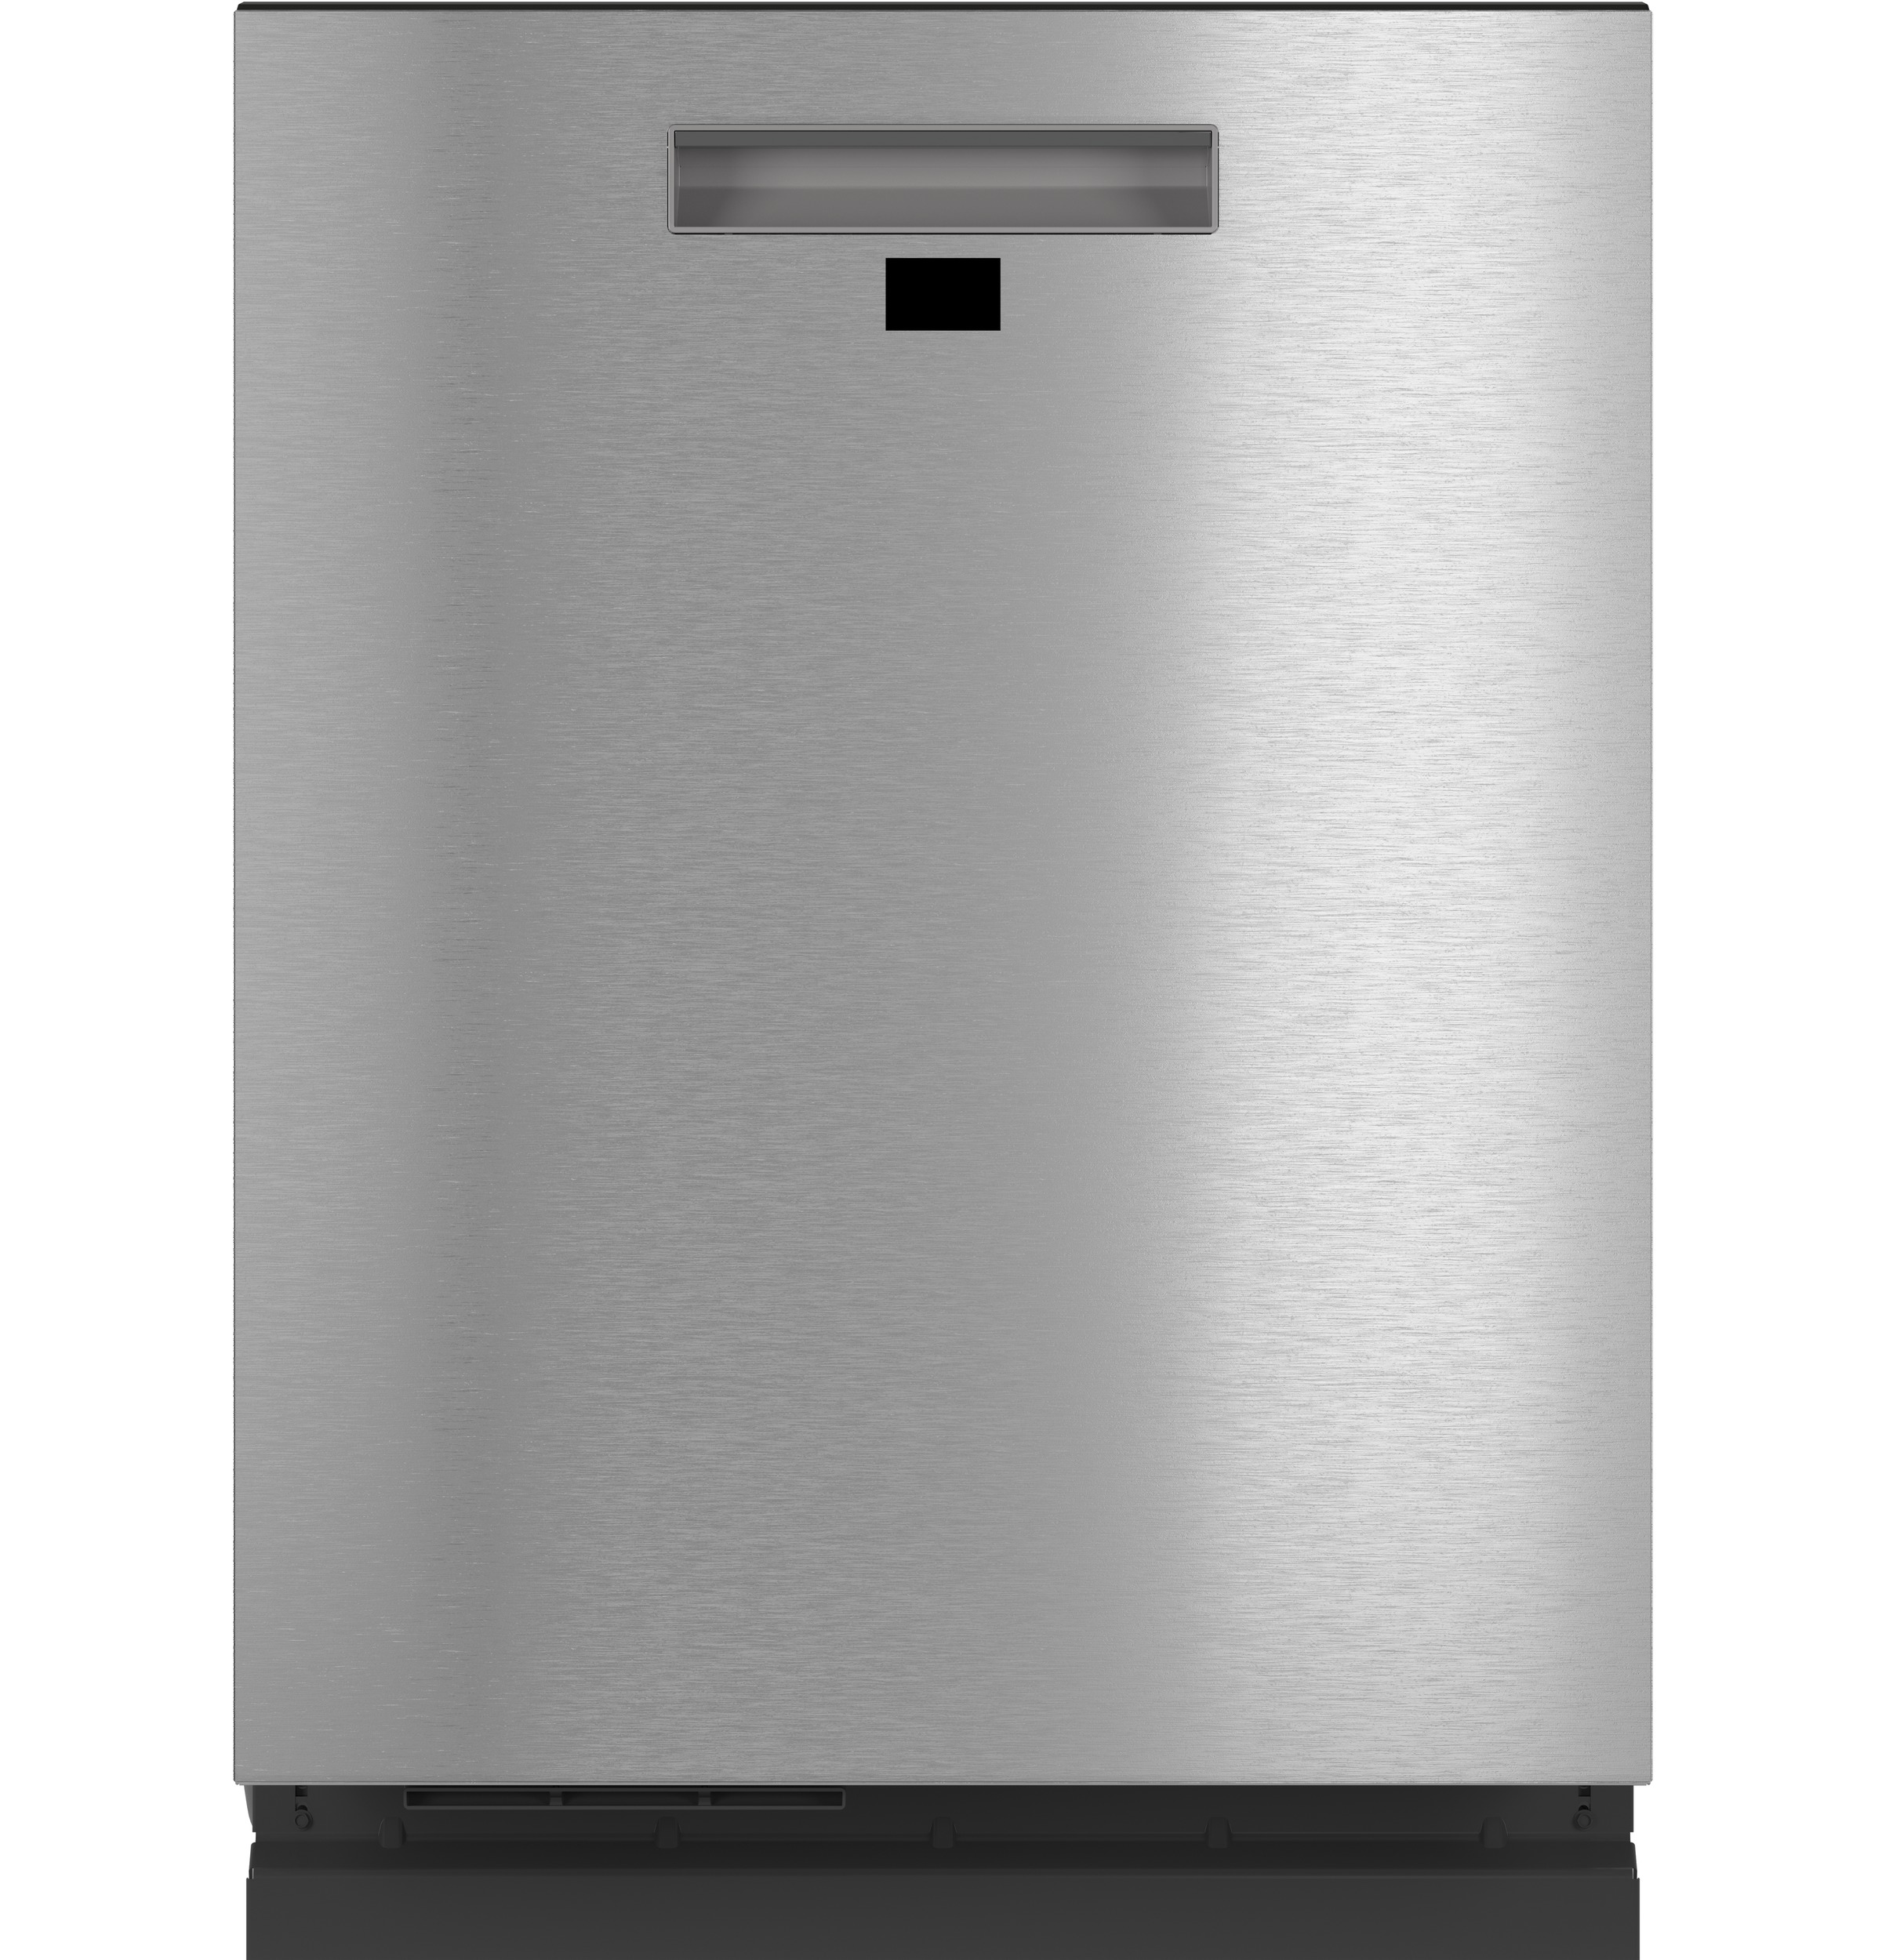 Cafe Café™ Smart Stainless Interior Built-In Dishwasher with Hidden Controls